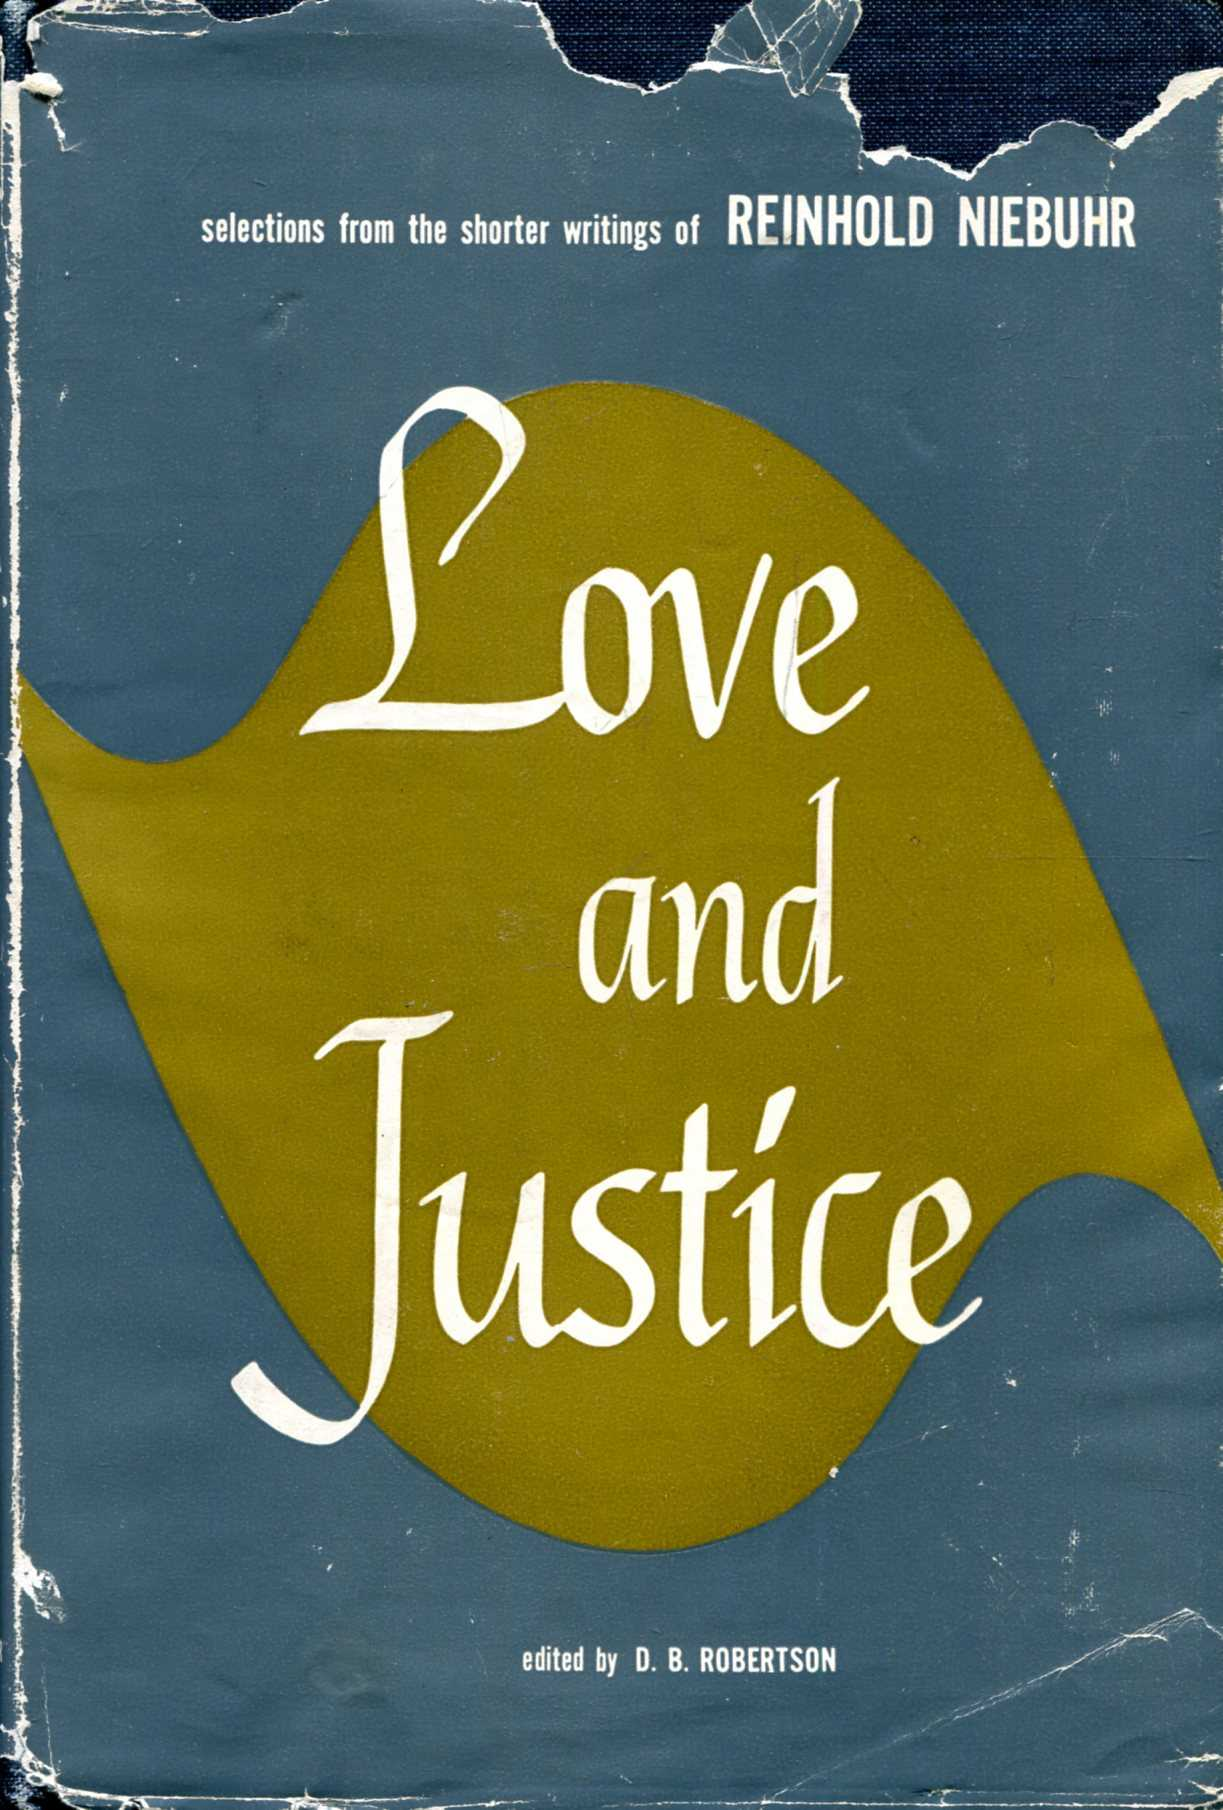 Image for Love and Justice, selections from the shorter writings of Reinhold Niebuhr